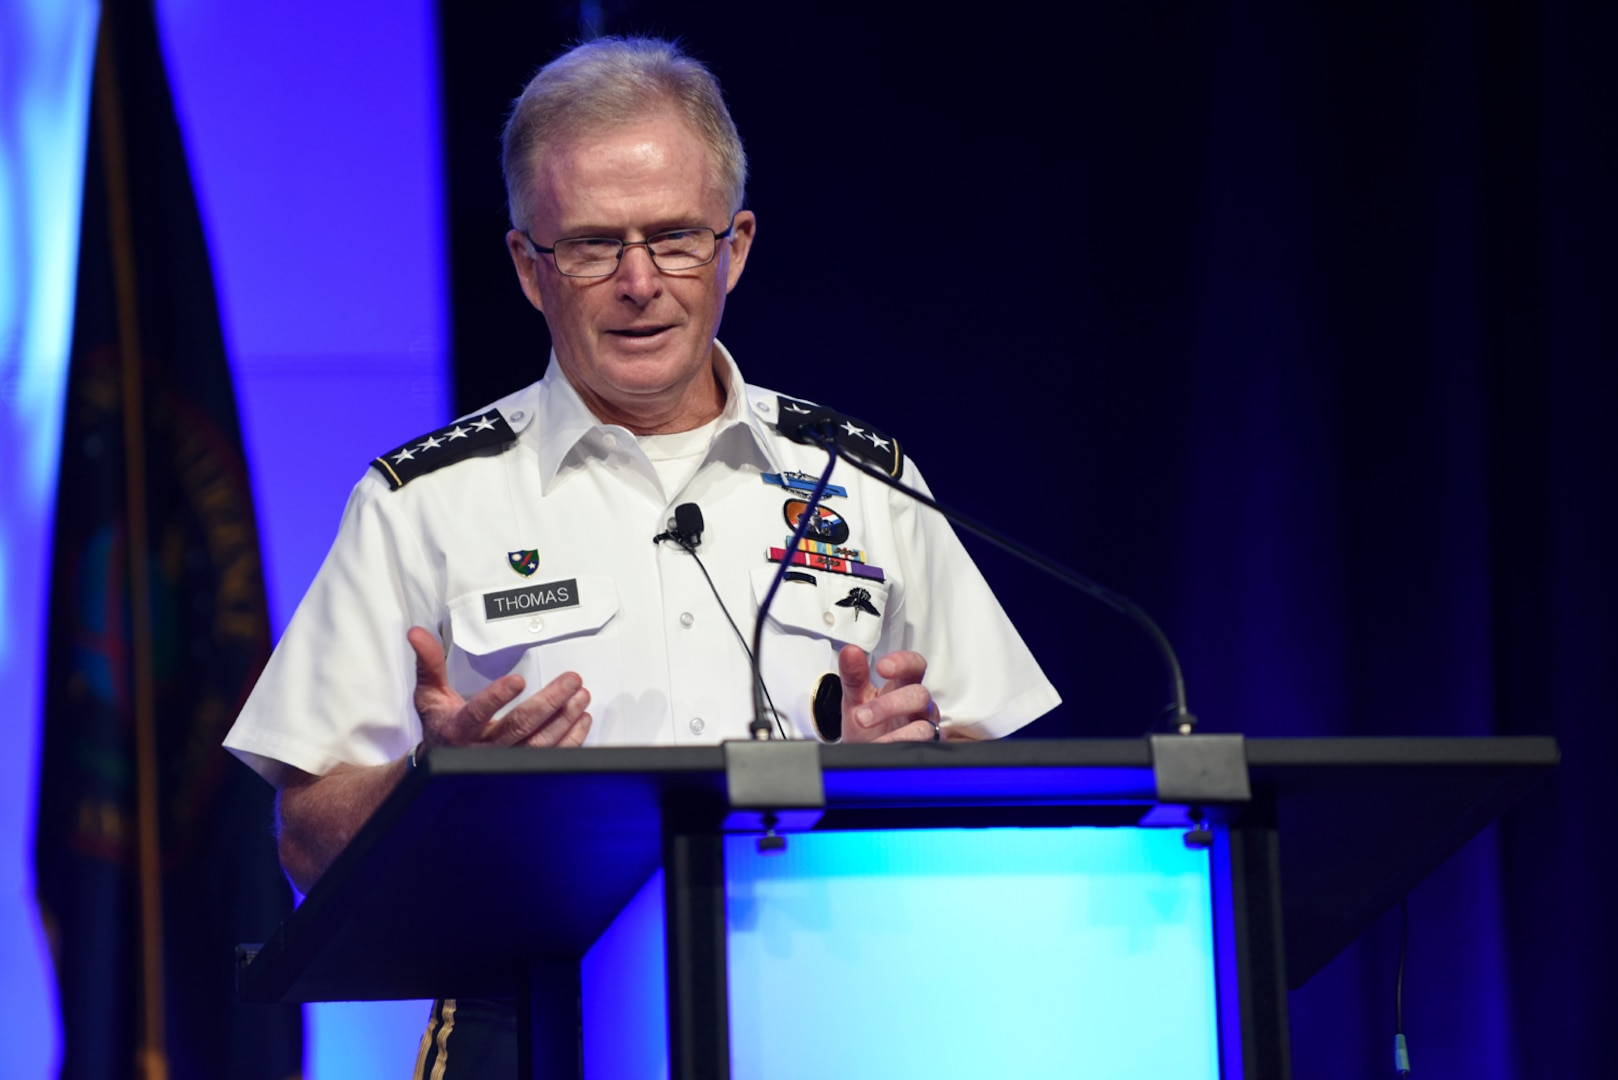 Gen. Raymond A. Thomas III, commander, U.S. Special Operations Command, discusses the value of open source intelligence during the 2018 DoDIIS Worldwide Conference.